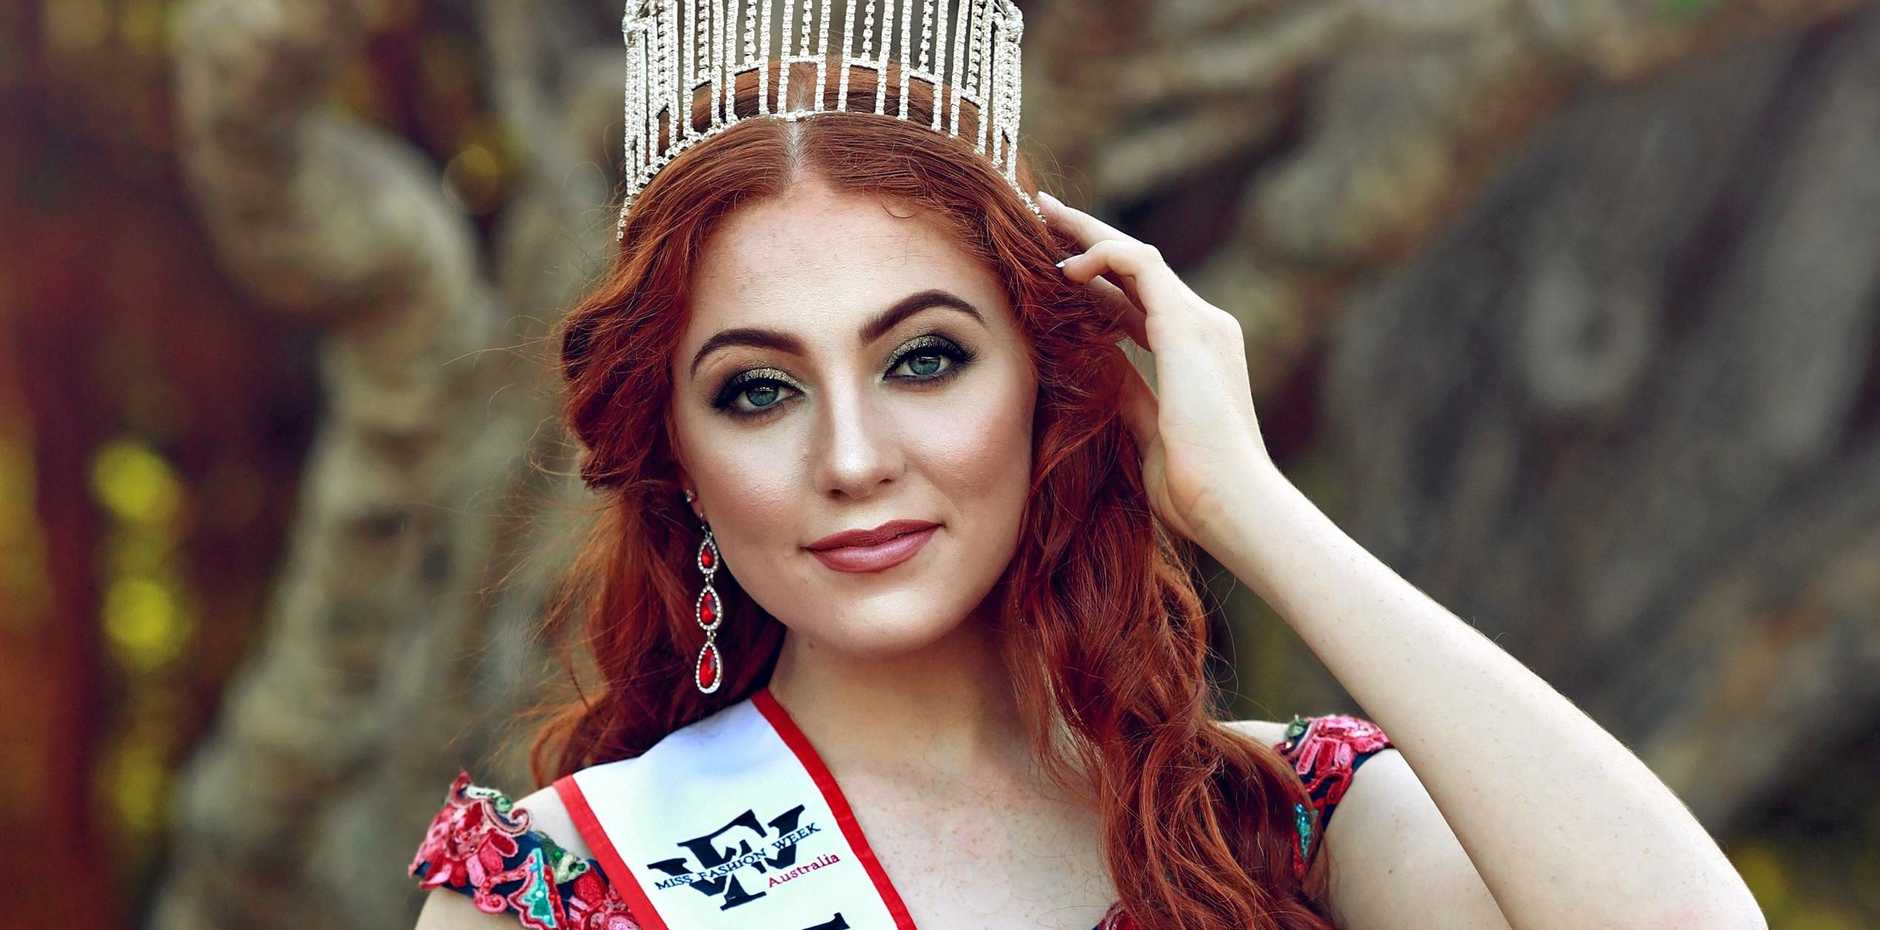 RUNWAY STAR: Jacquelyn Watts will represent Australia at Miss Teen Fashion Week International 2019 in Dallas, US in December.